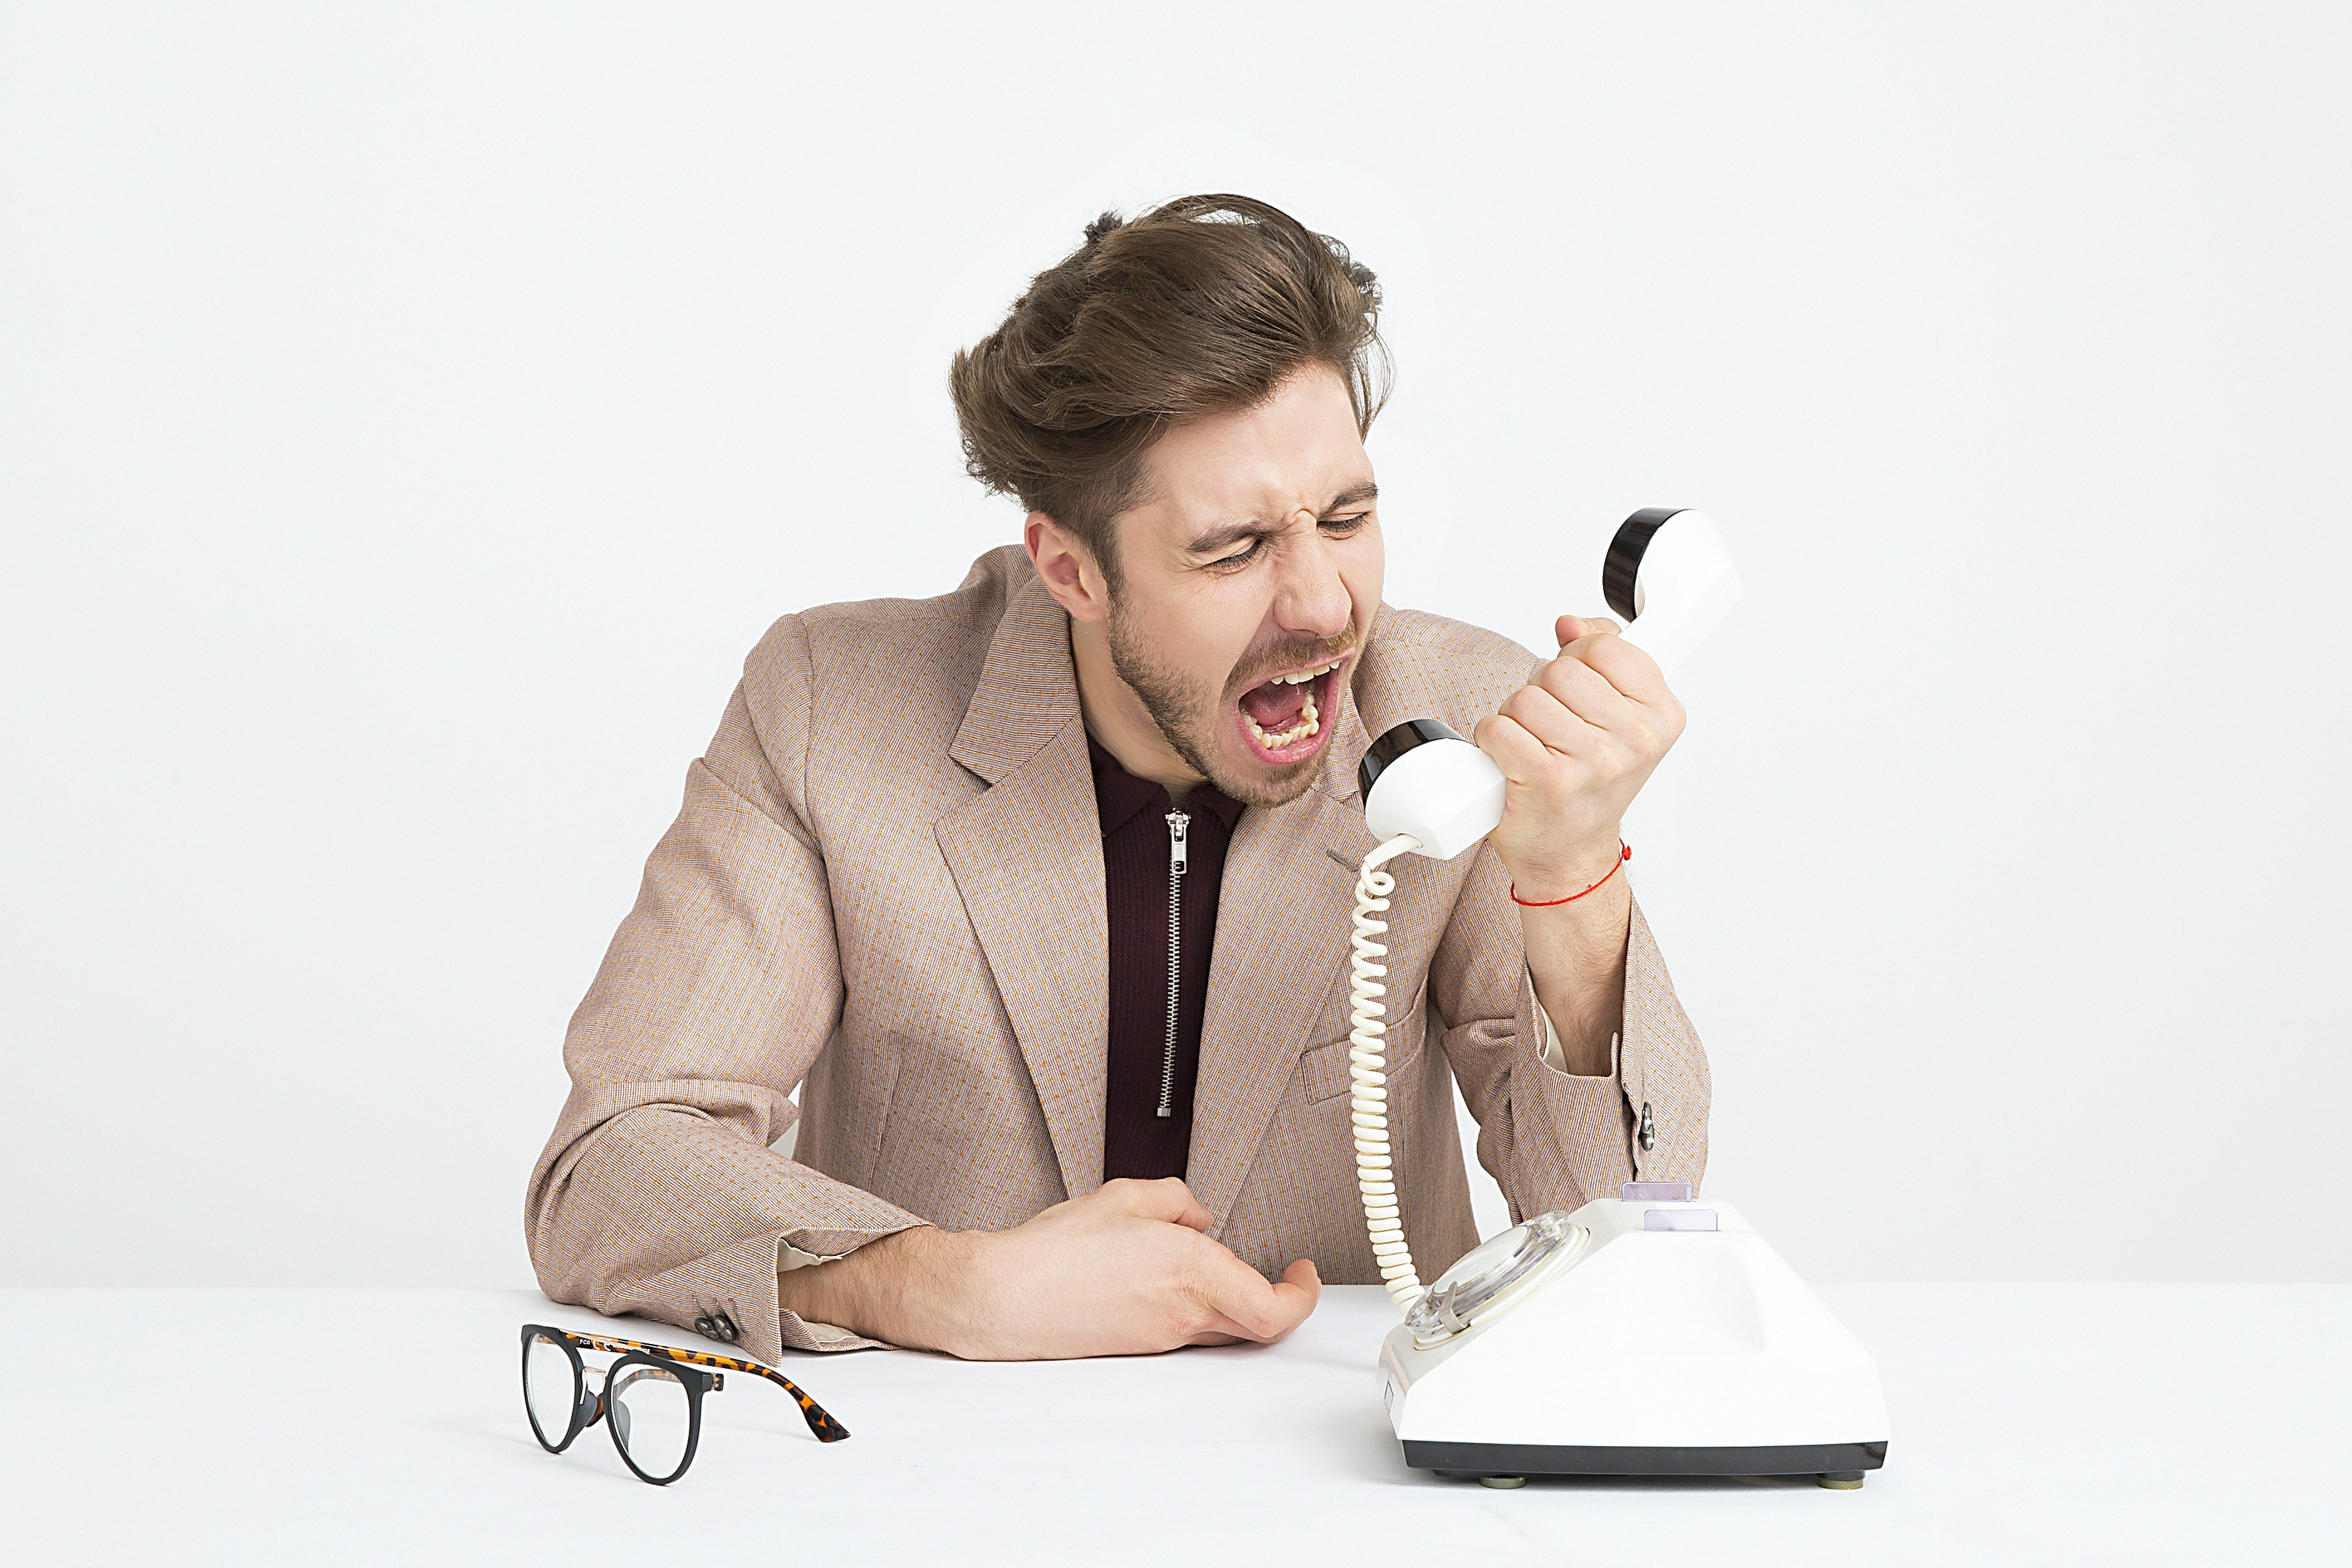 Pictured - A man wearing brown jacket mocking someone on the other end on the telephone | Source: Pexels